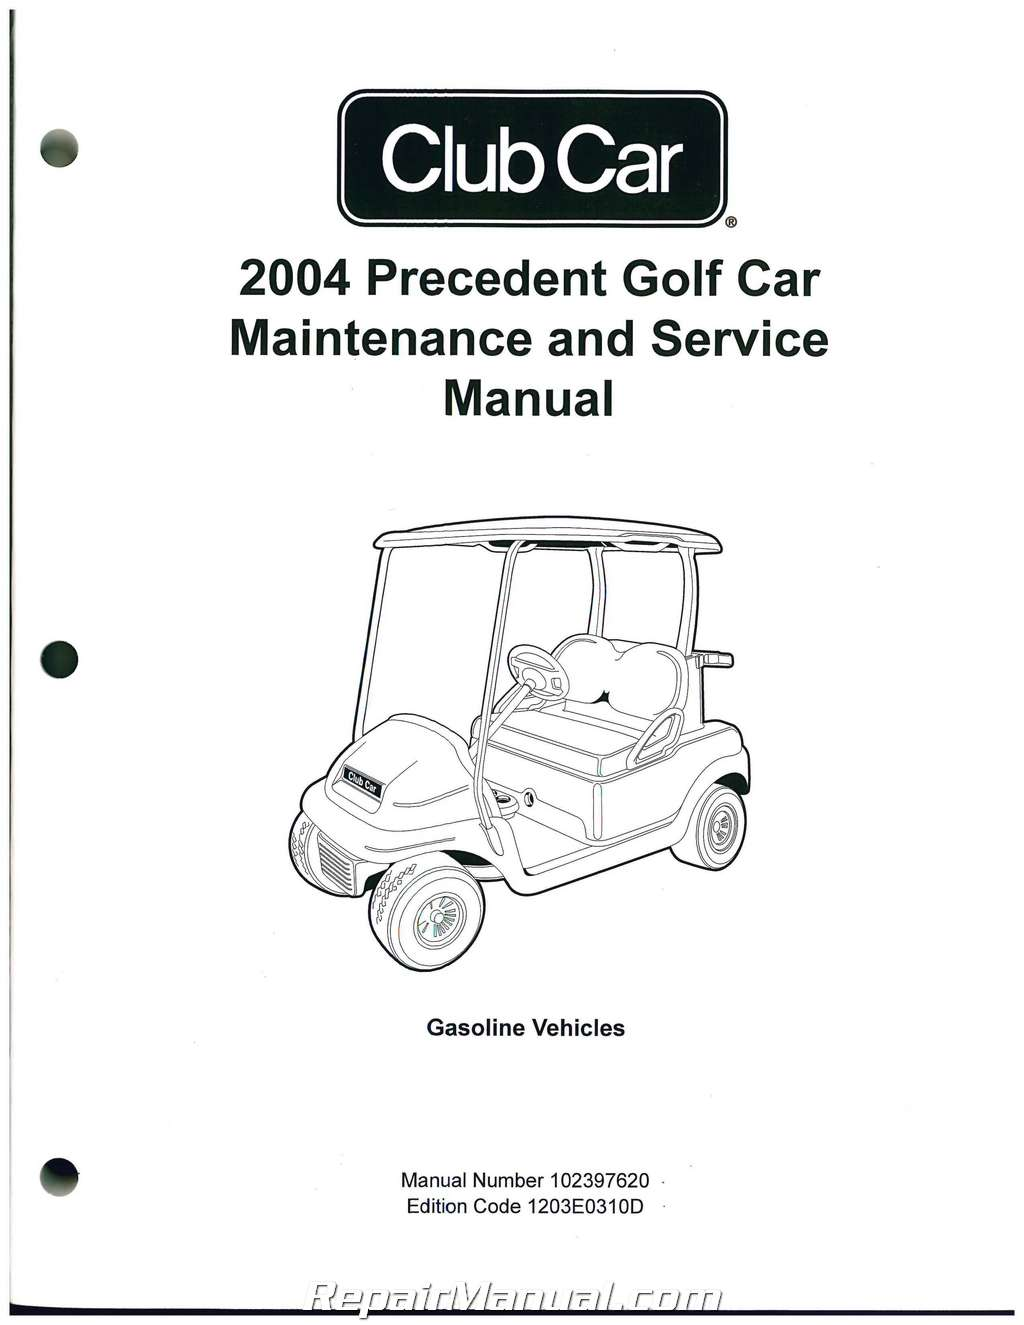 Precedent Club Car Golf Cart Service Manual